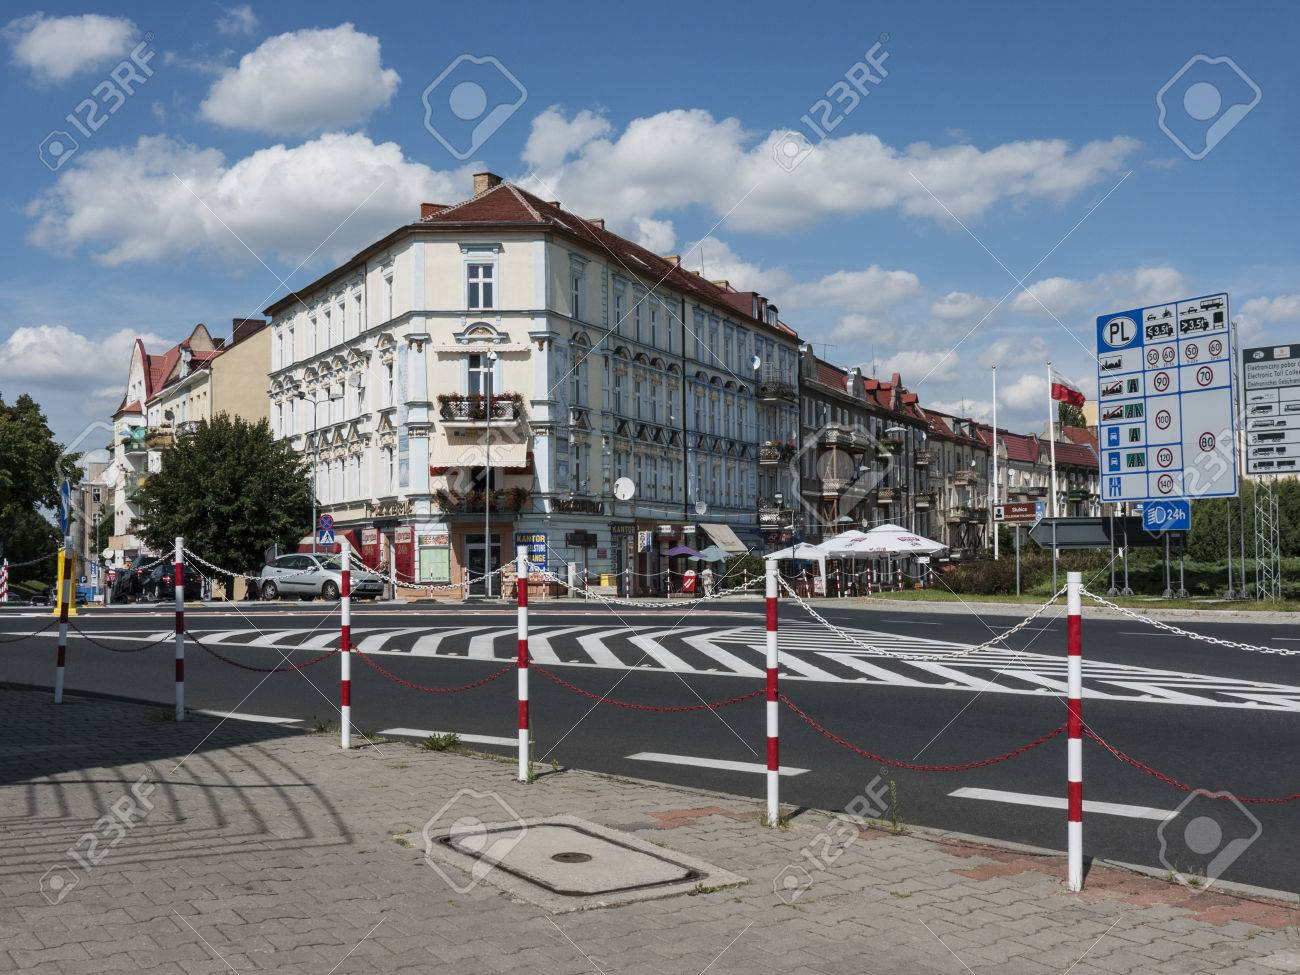 Slubice is a town in western Poland on border to Germany  By